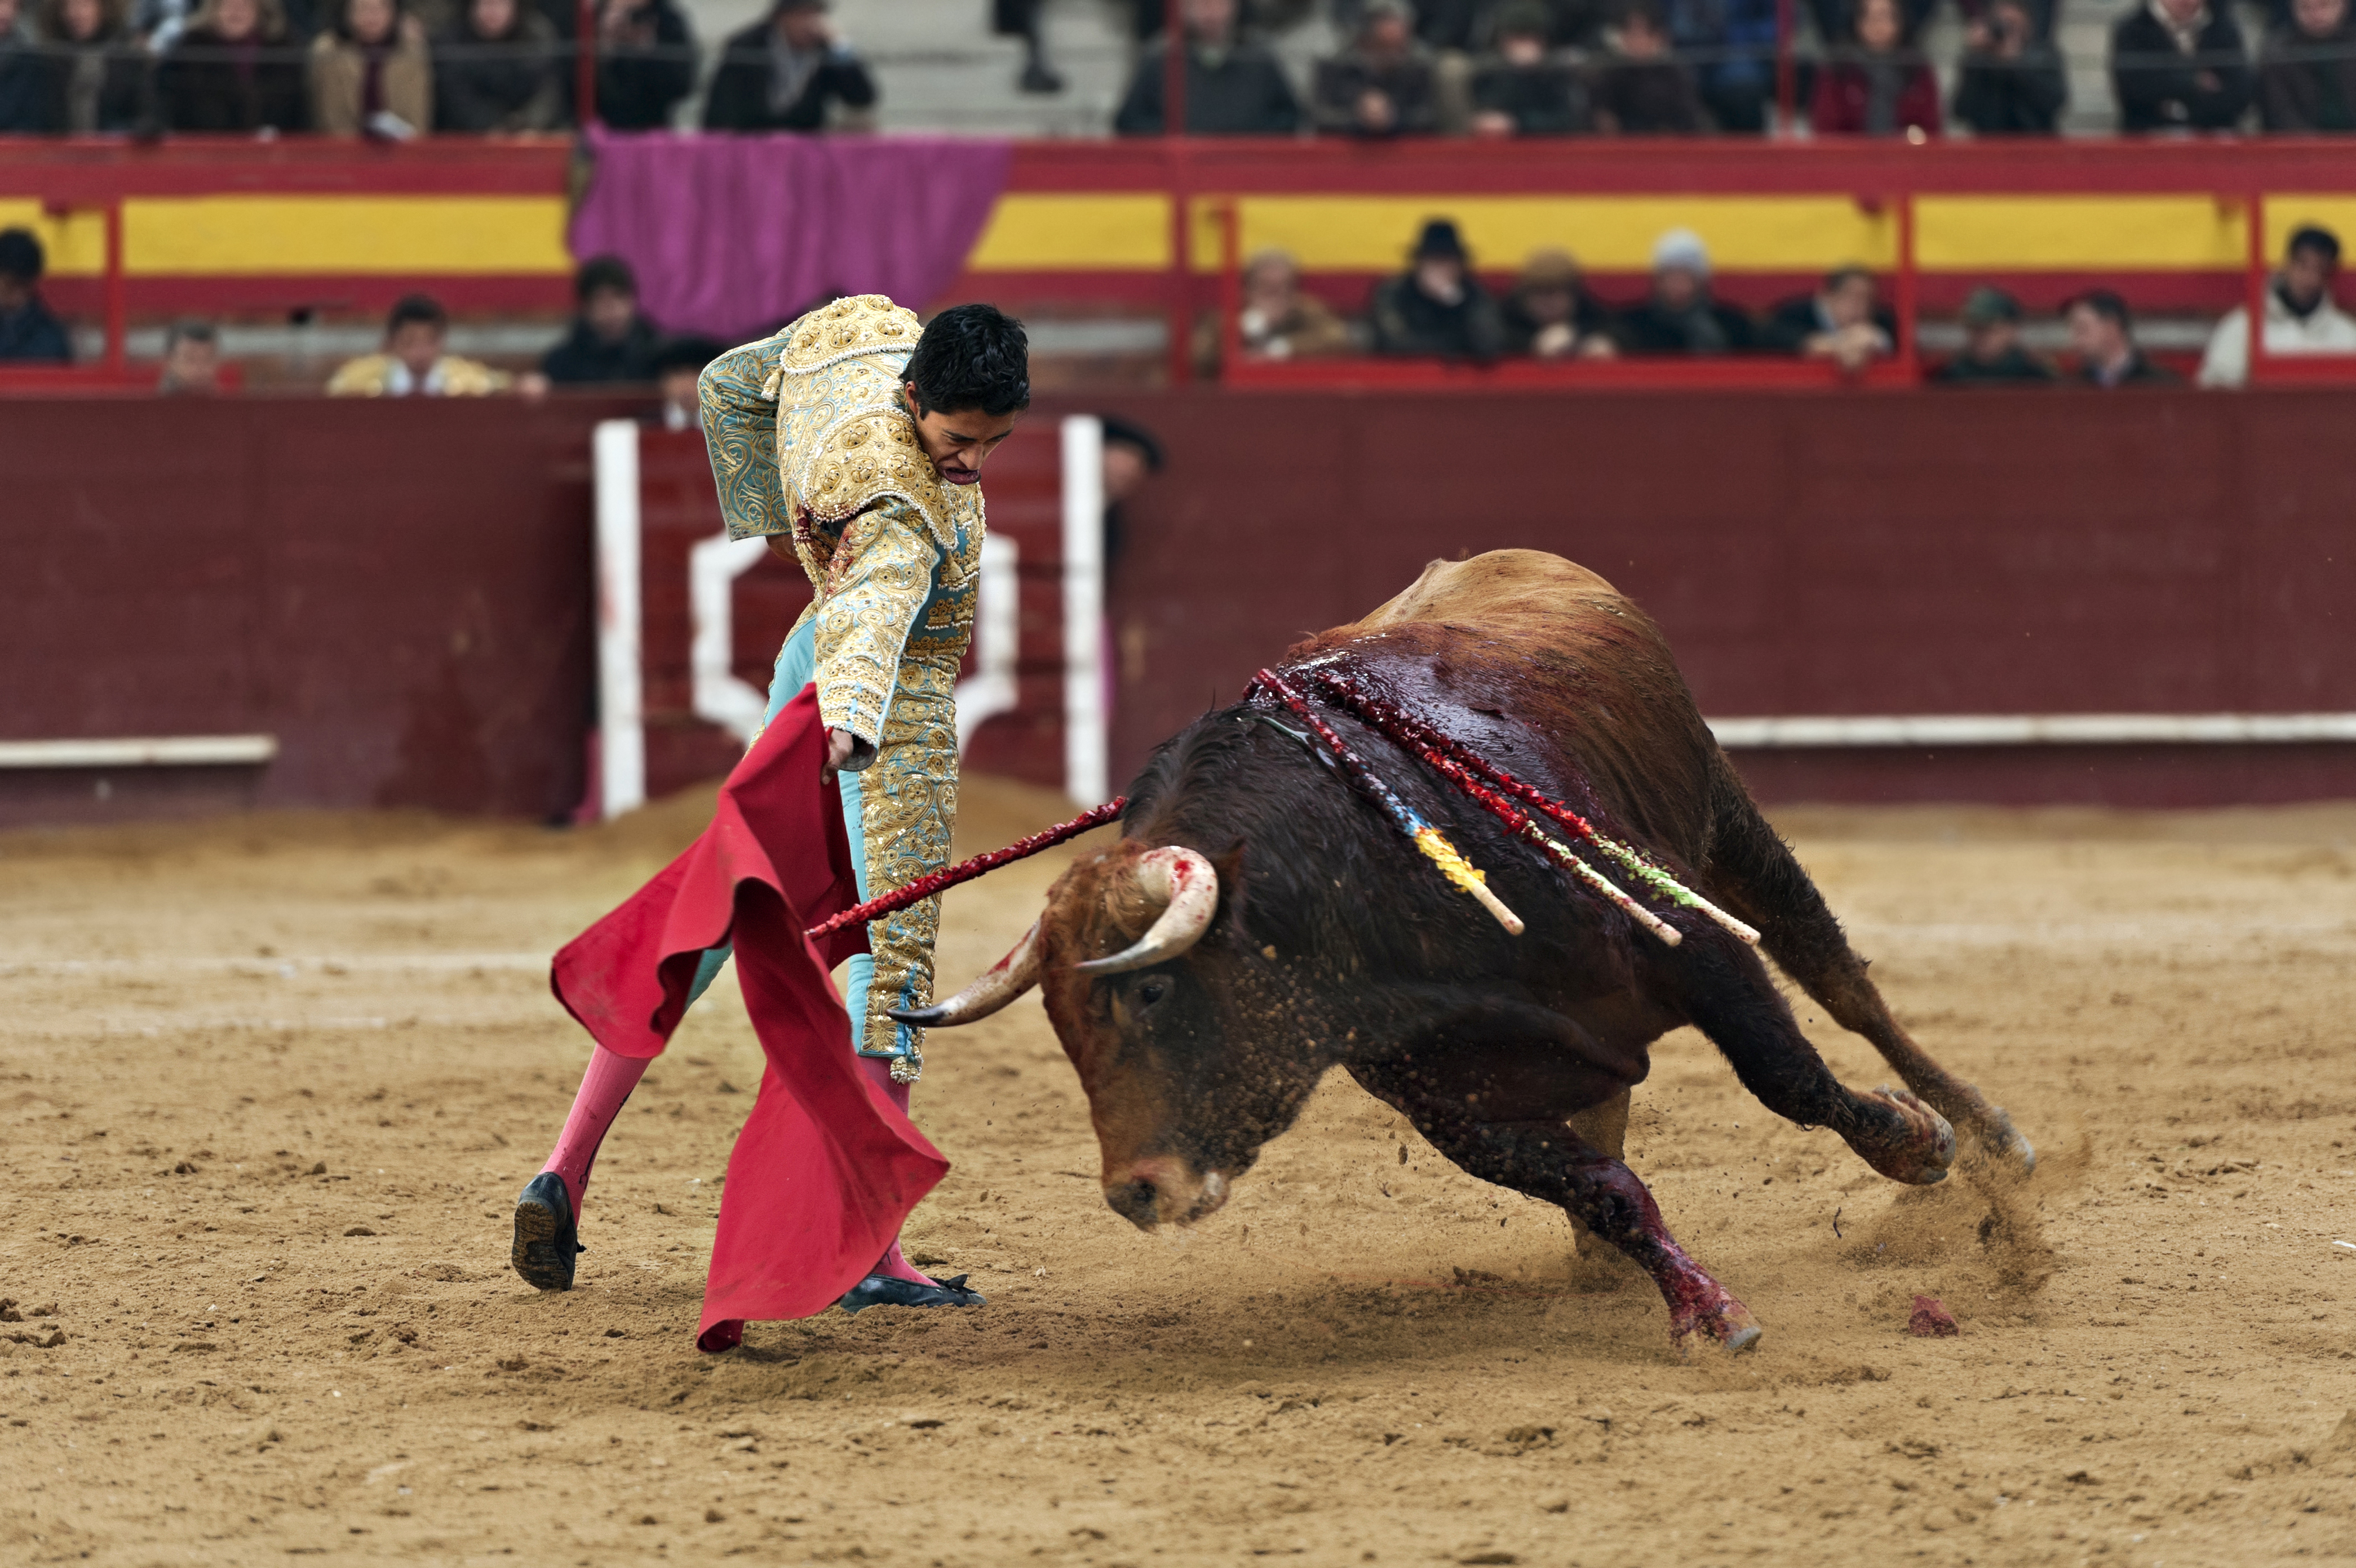 The death of a bull in the ring